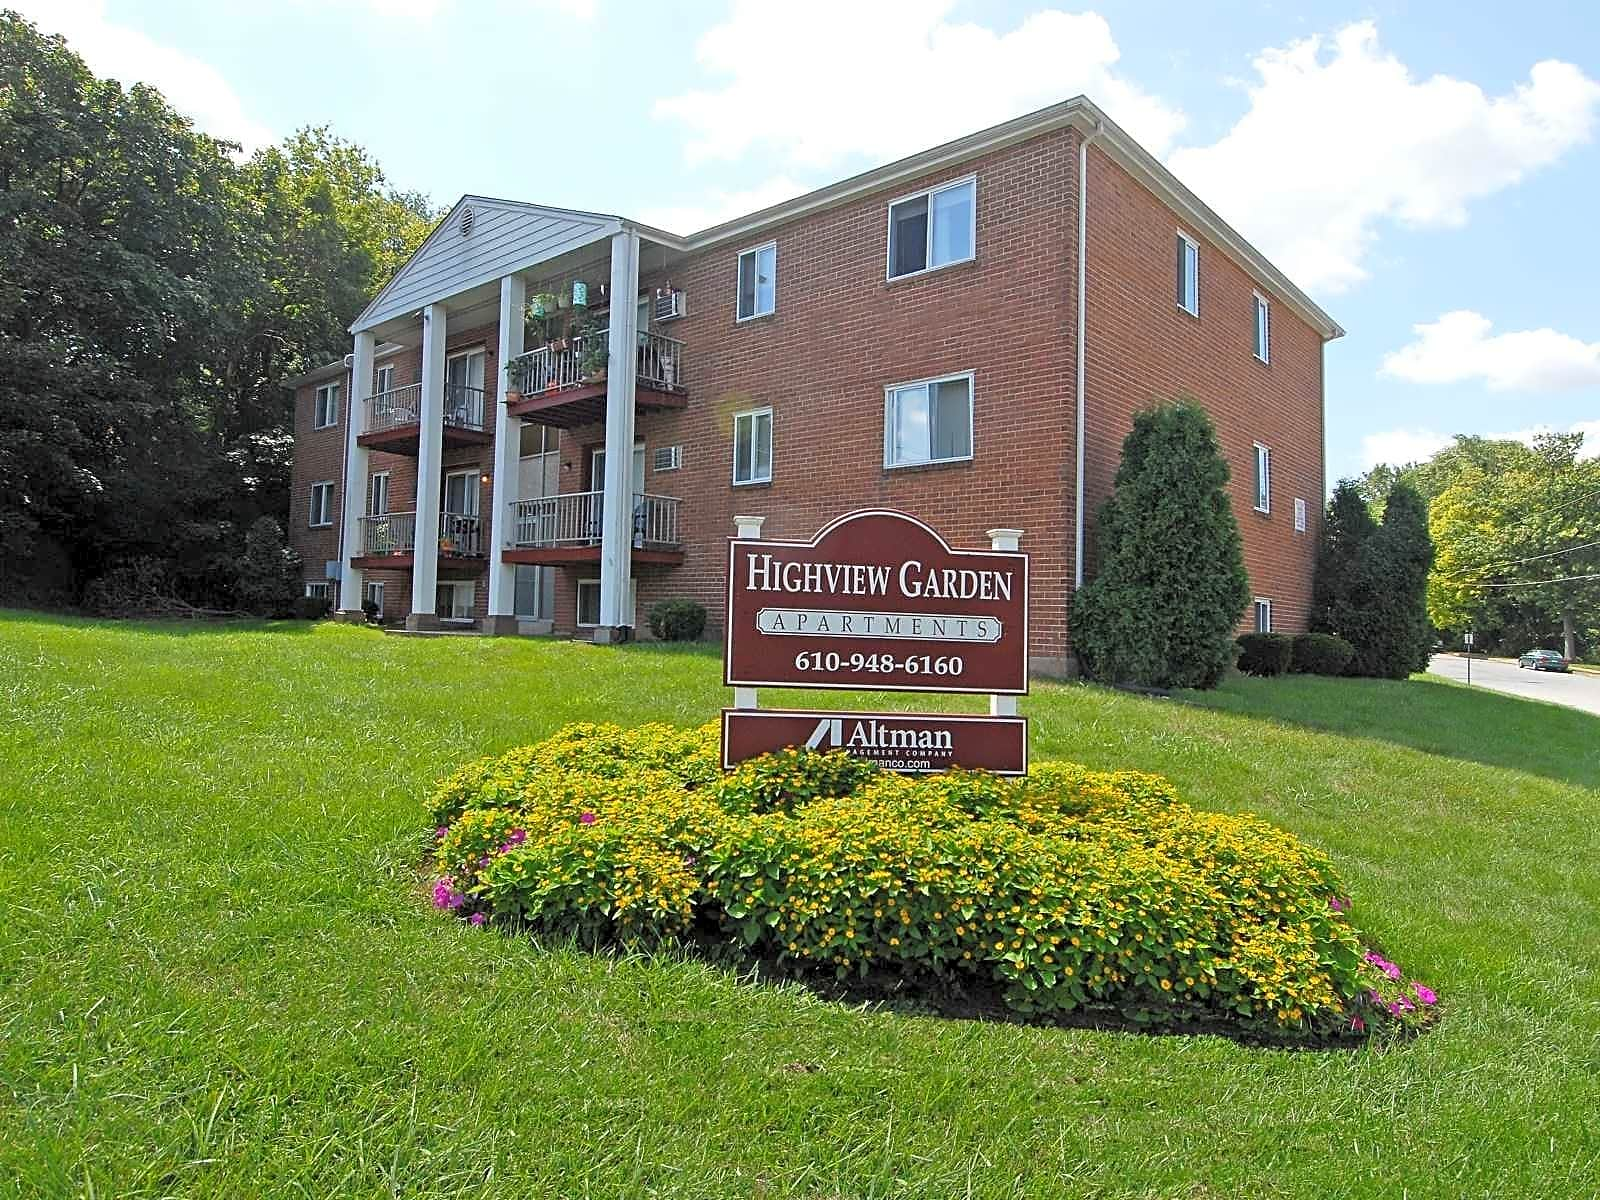 Highview Gardens for rent in Spring City